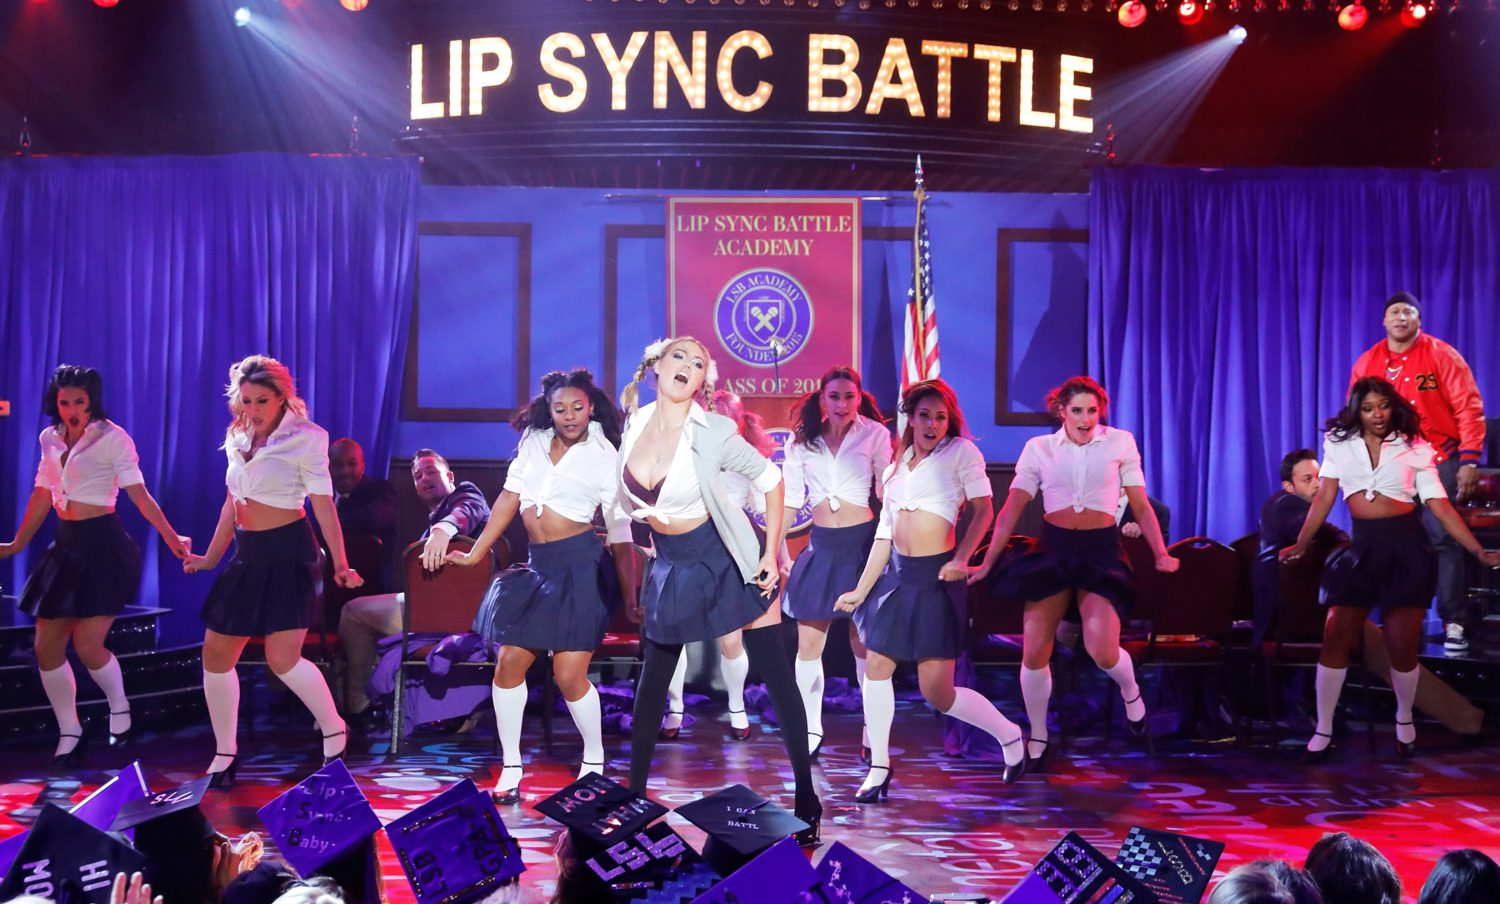 Kate Upton dons Britney Spears schoolgirl outfit in Lip Sync Battle preview